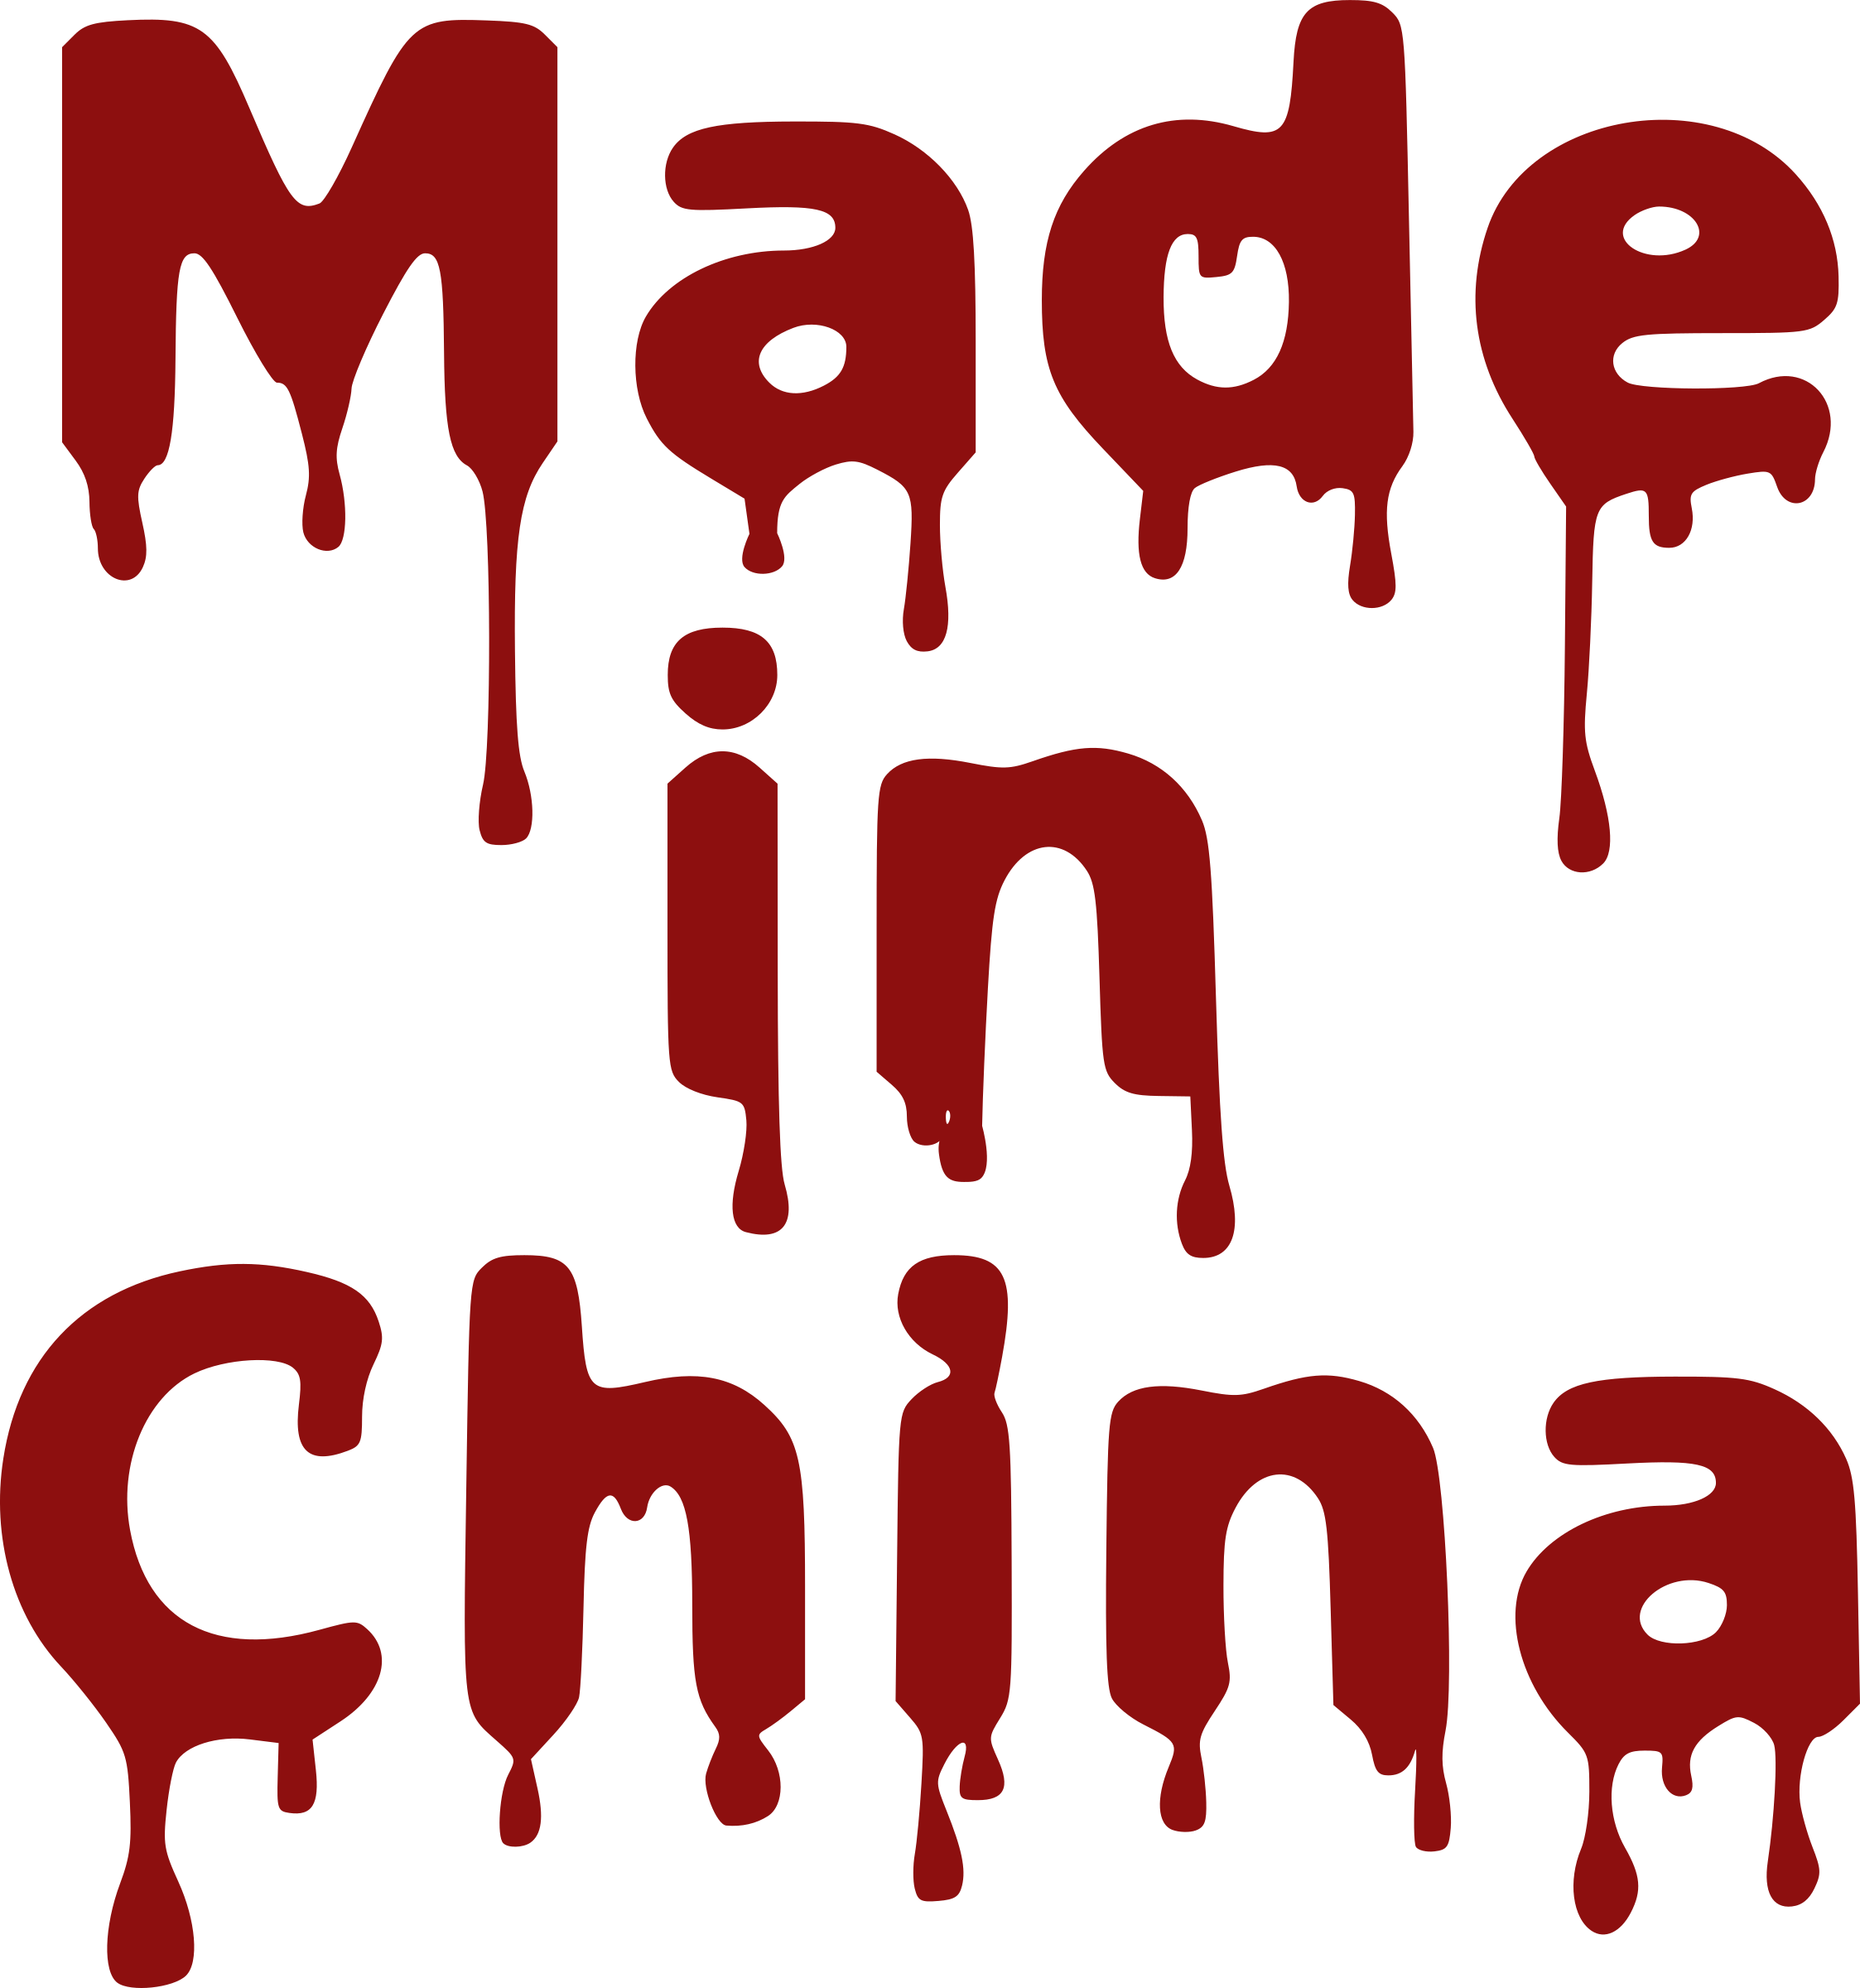 Made In China by iolco51